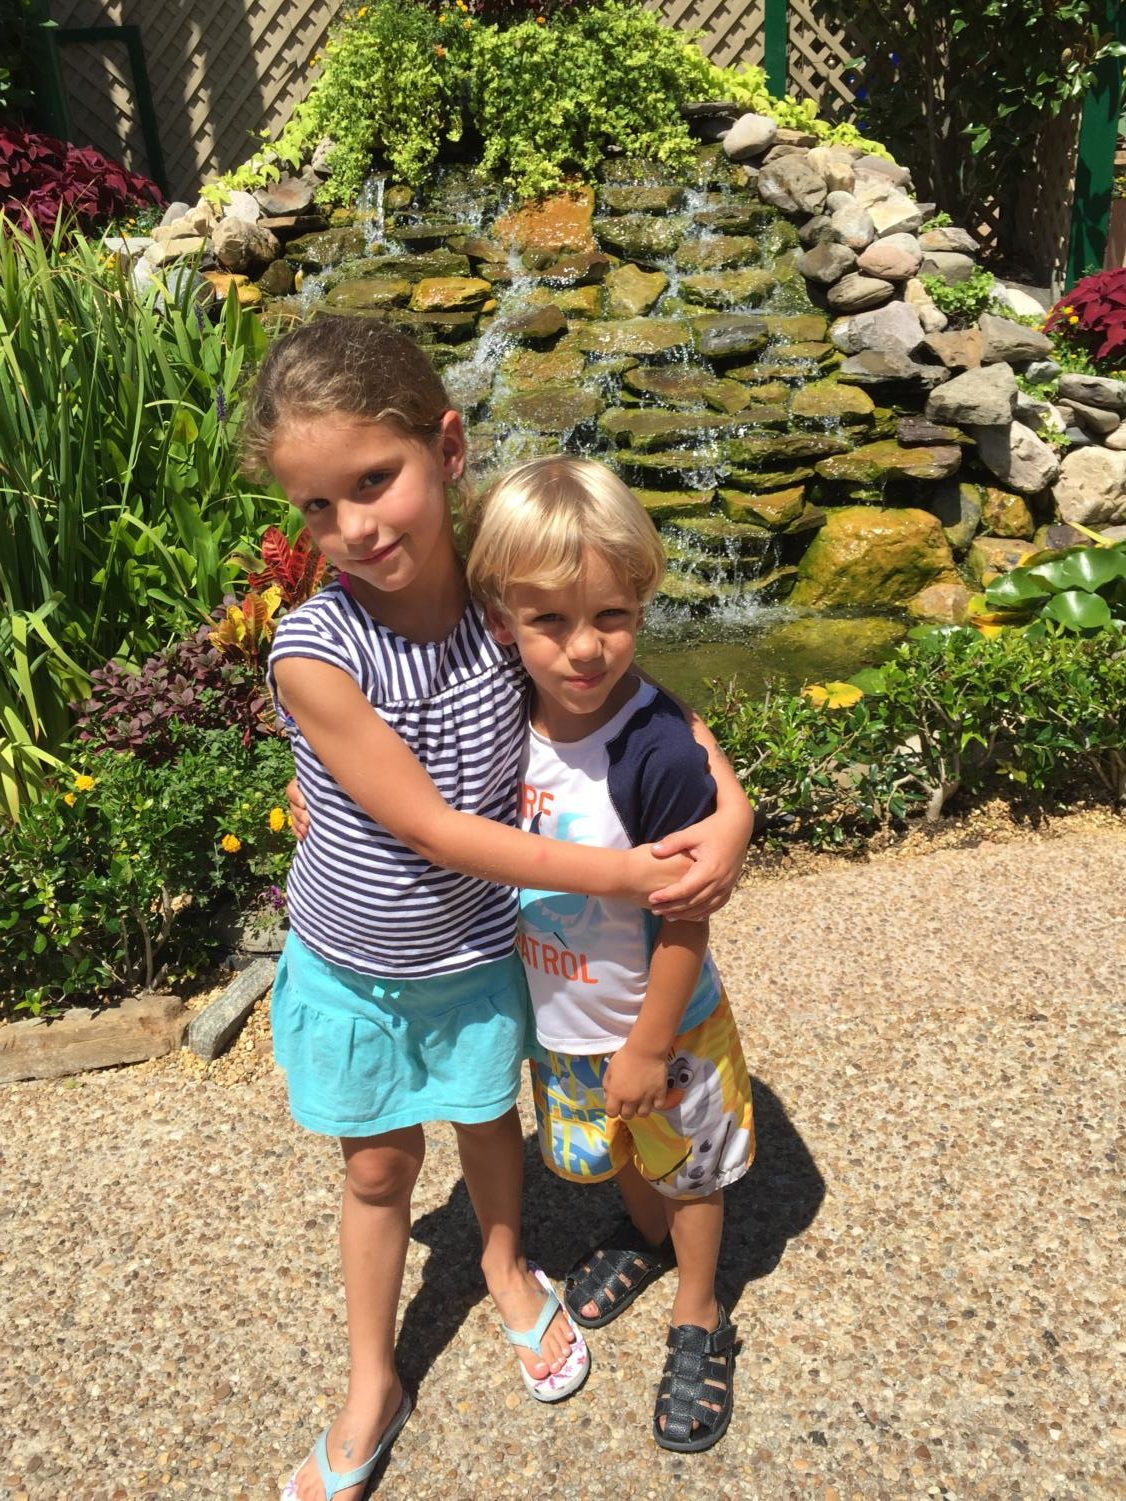 Jasmine and Patrick visit Busch Gardens for the first time.